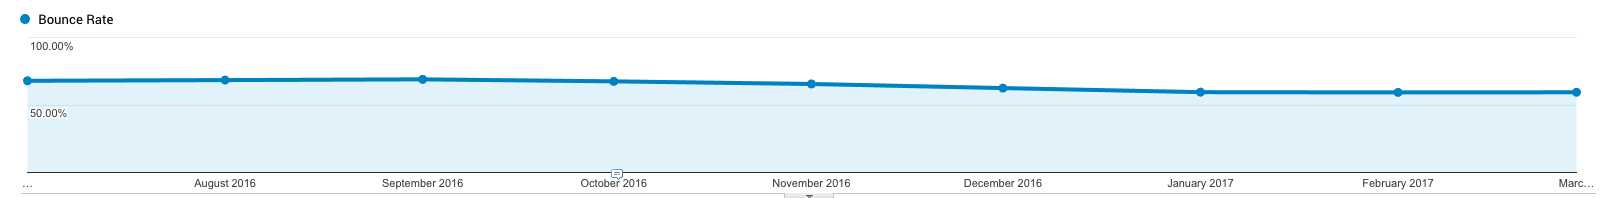 Bounce Rate Falling